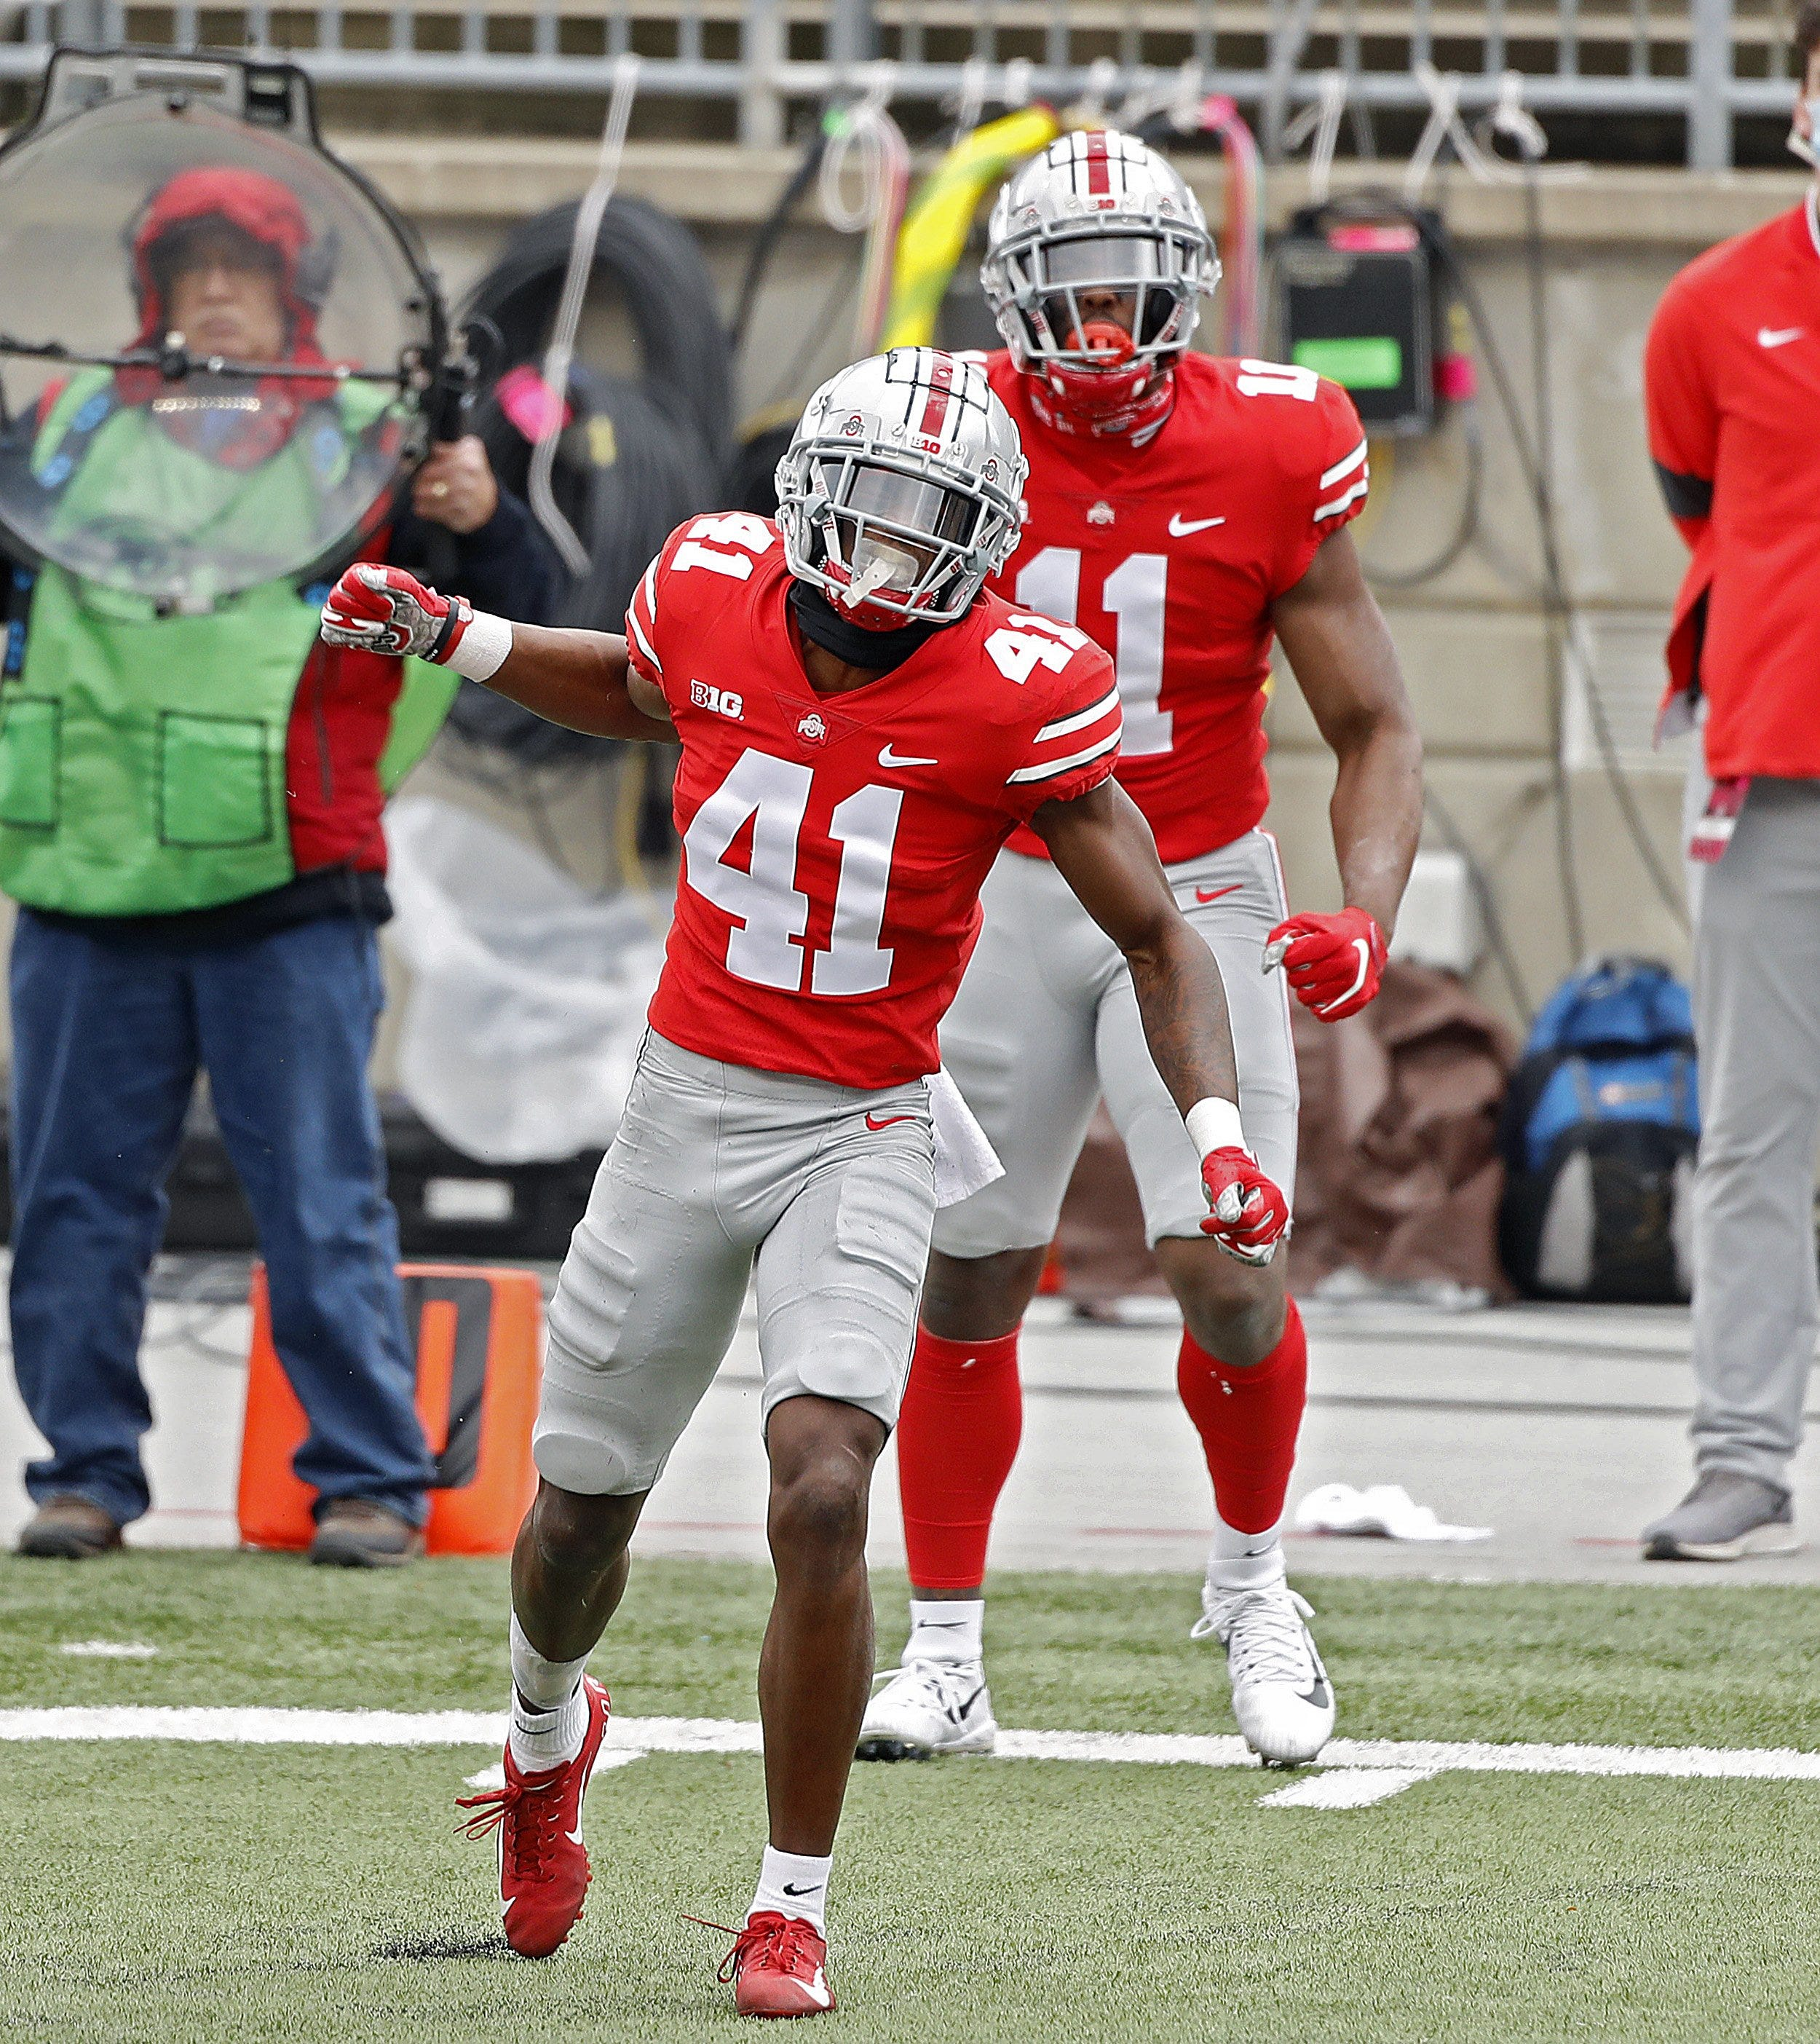 Ohio State Buckeyes safety Josh Proctor celebrates a tackle against Nebraska Cornhuskers during the 2nd quarter in their NCAA Division I football game on Saturday, Oct. 24, 2020 at Ohio Stadium in Columbus, Ohio.